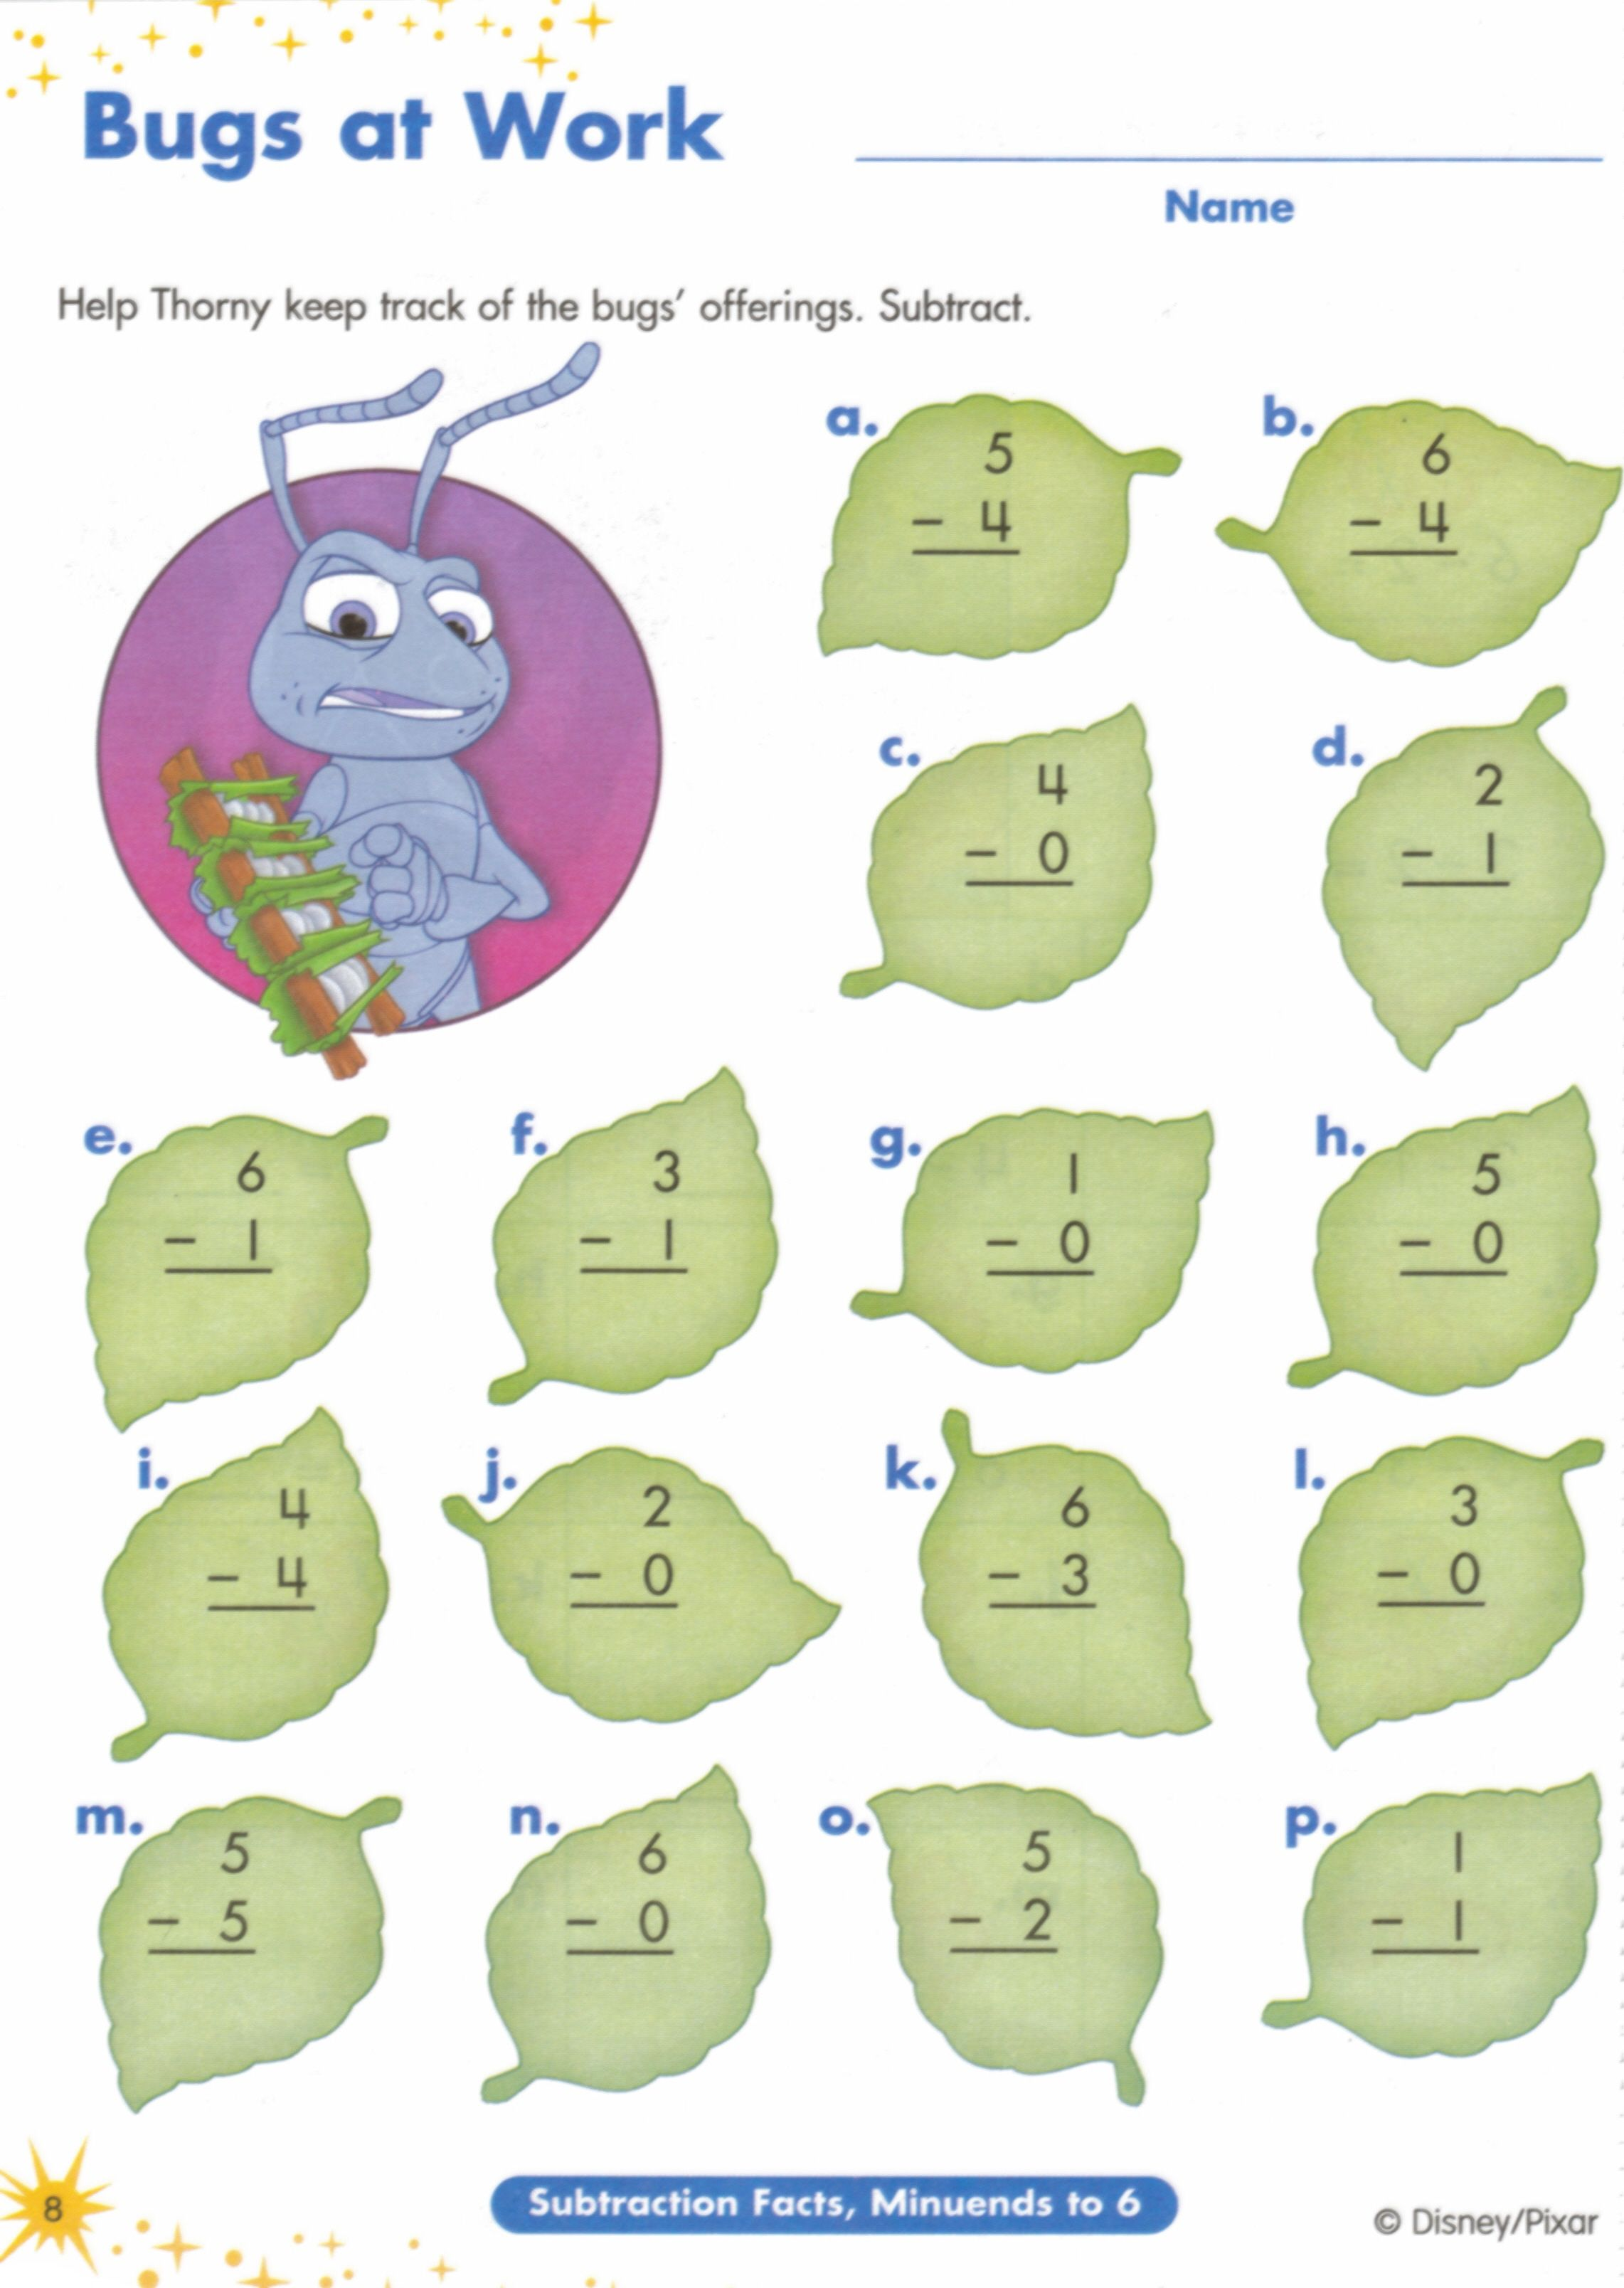 Weirdmailus  Outstanding  Images About Worksheets On Pinterest  Fun Facts For Kids  With Outstanding  Images About Worksheets On Pinterest  Fun Facts For Kids Earth Day Worksheets And Jungles With Awesome Digital Worksheets Also Homonyms And Homographs Worksheets In Addition Picture Matching Worksheets And Fraction Worksheet With Answers As Well As All Operations With Decimals Worksheet Additionally Fraction Worksheet For Grade  From Pinterestcom With Weirdmailus  Outstanding  Images About Worksheets On Pinterest  Fun Facts For Kids  With Awesome  Images About Worksheets On Pinterest  Fun Facts For Kids Earth Day Worksheets And Jungles And Outstanding Digital Worksheets Also Homonyms And Homographs Worksheets In Addition Picture Matching Worksheets From Pinterestcom